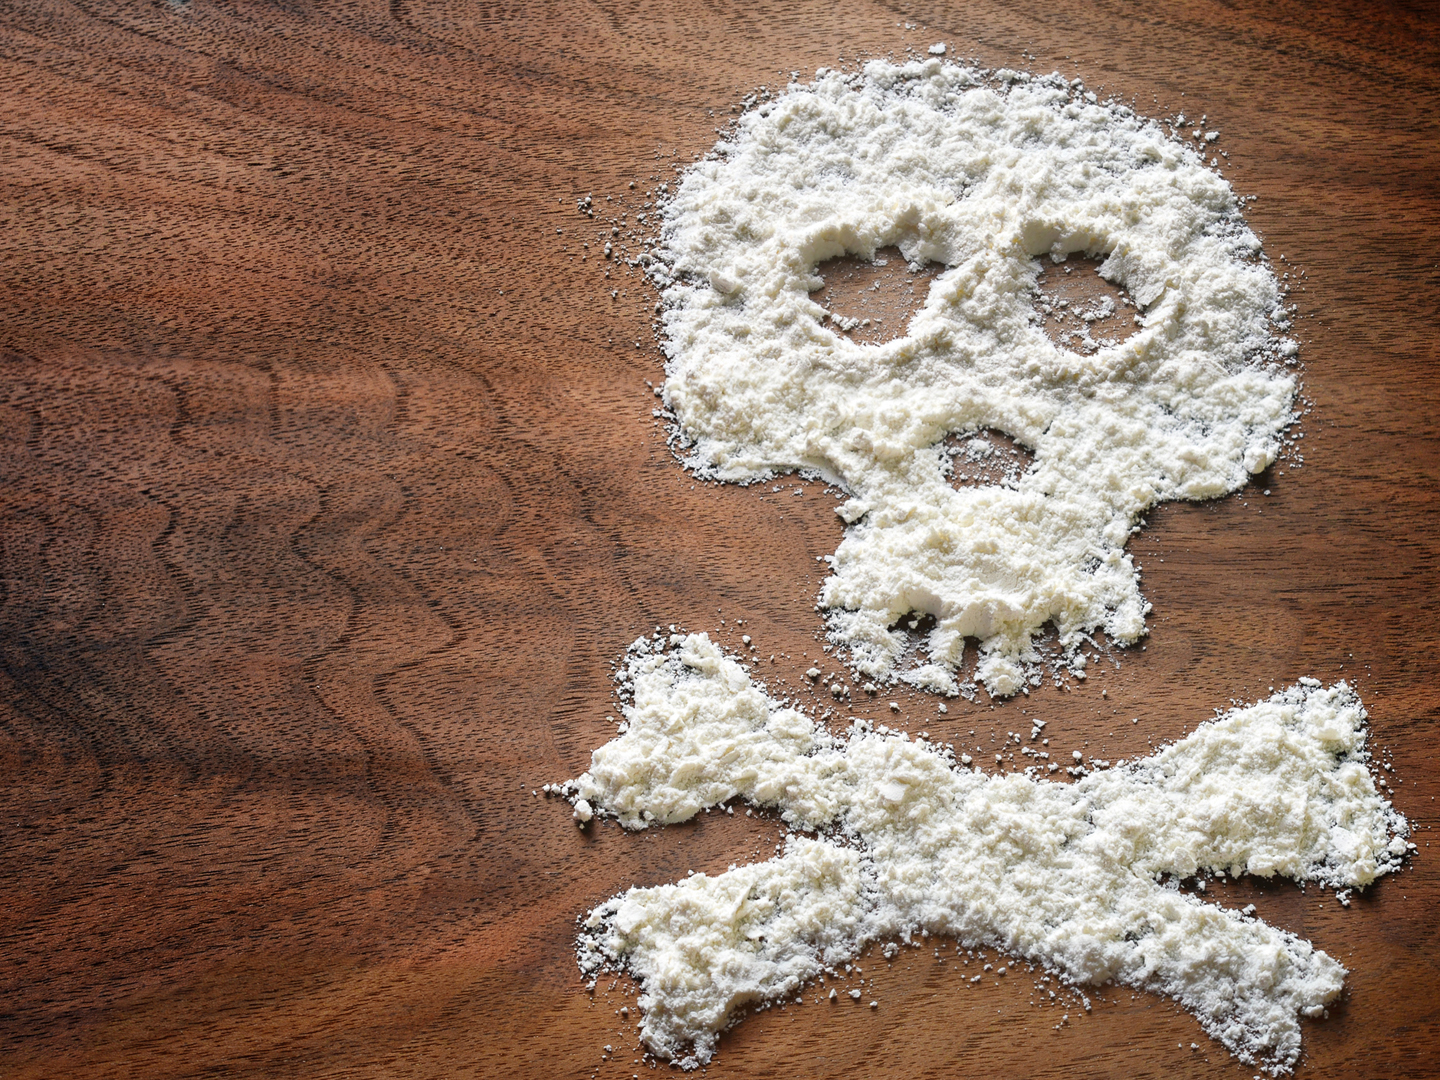 Does Talc Cause Ovarian Cancer? - Ask Dr. Weil